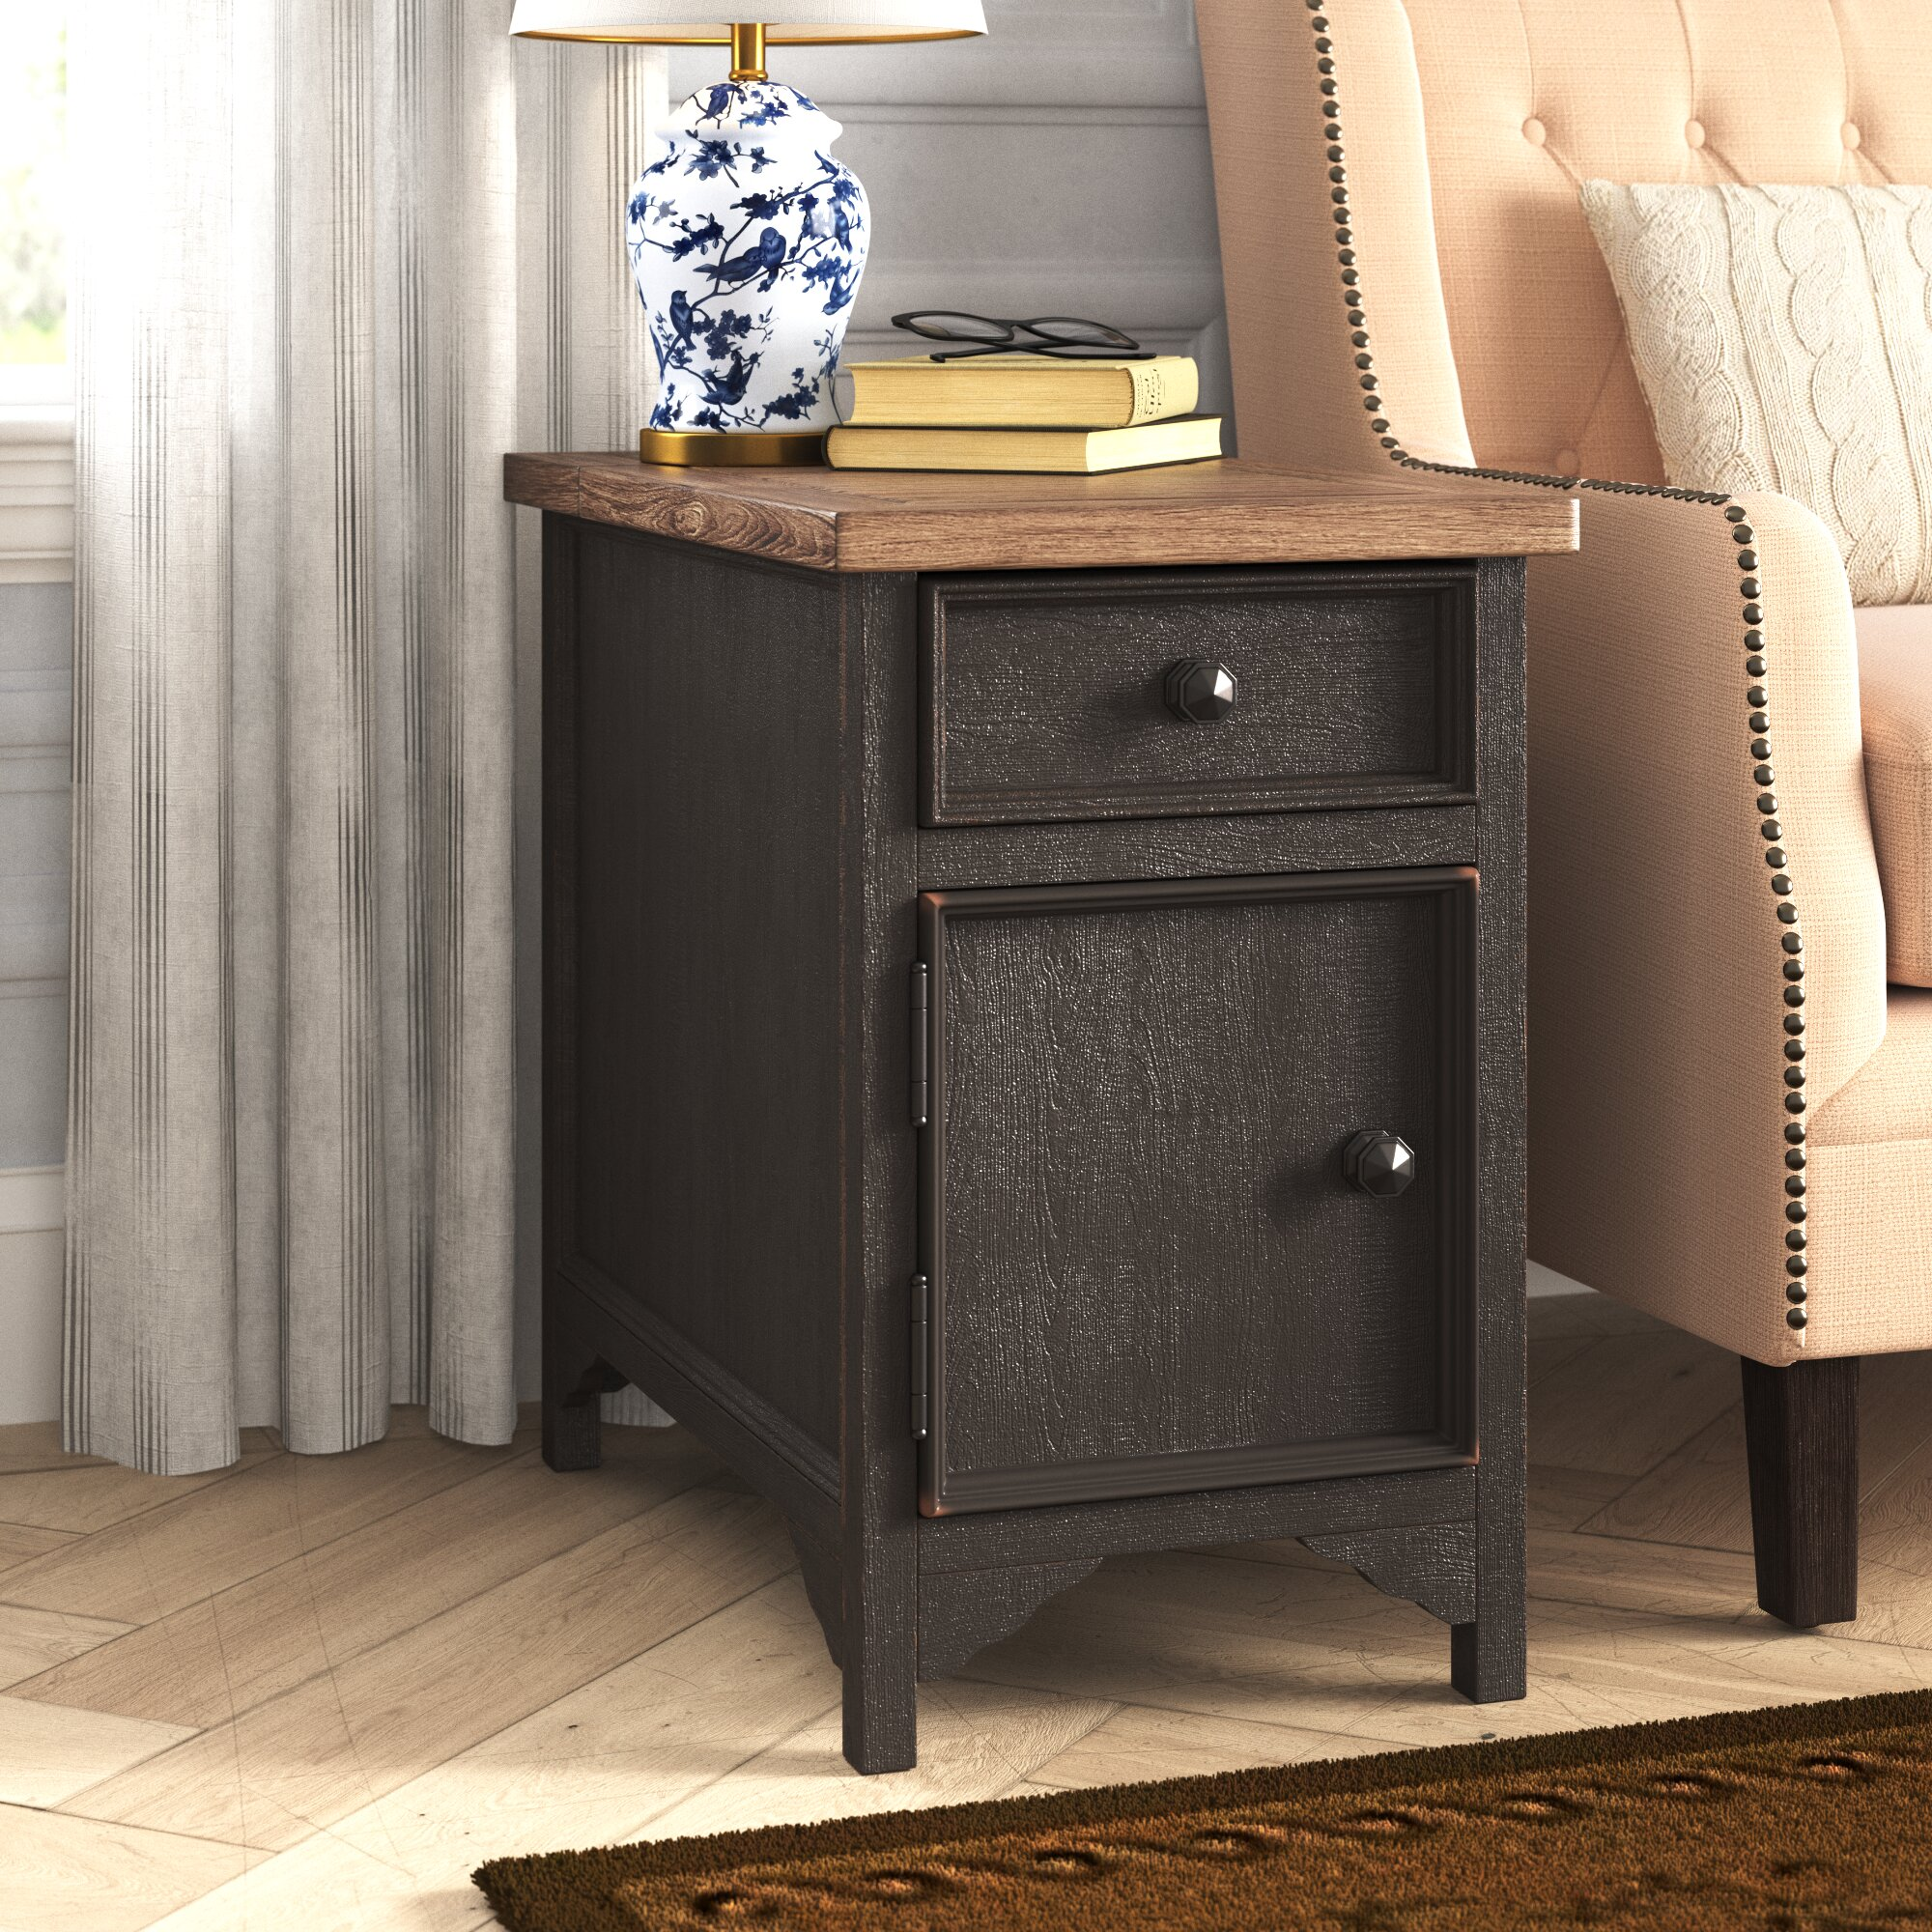 Canora Grey Salazar End Table With Storage And Built In Outlets Reviews Wayfair